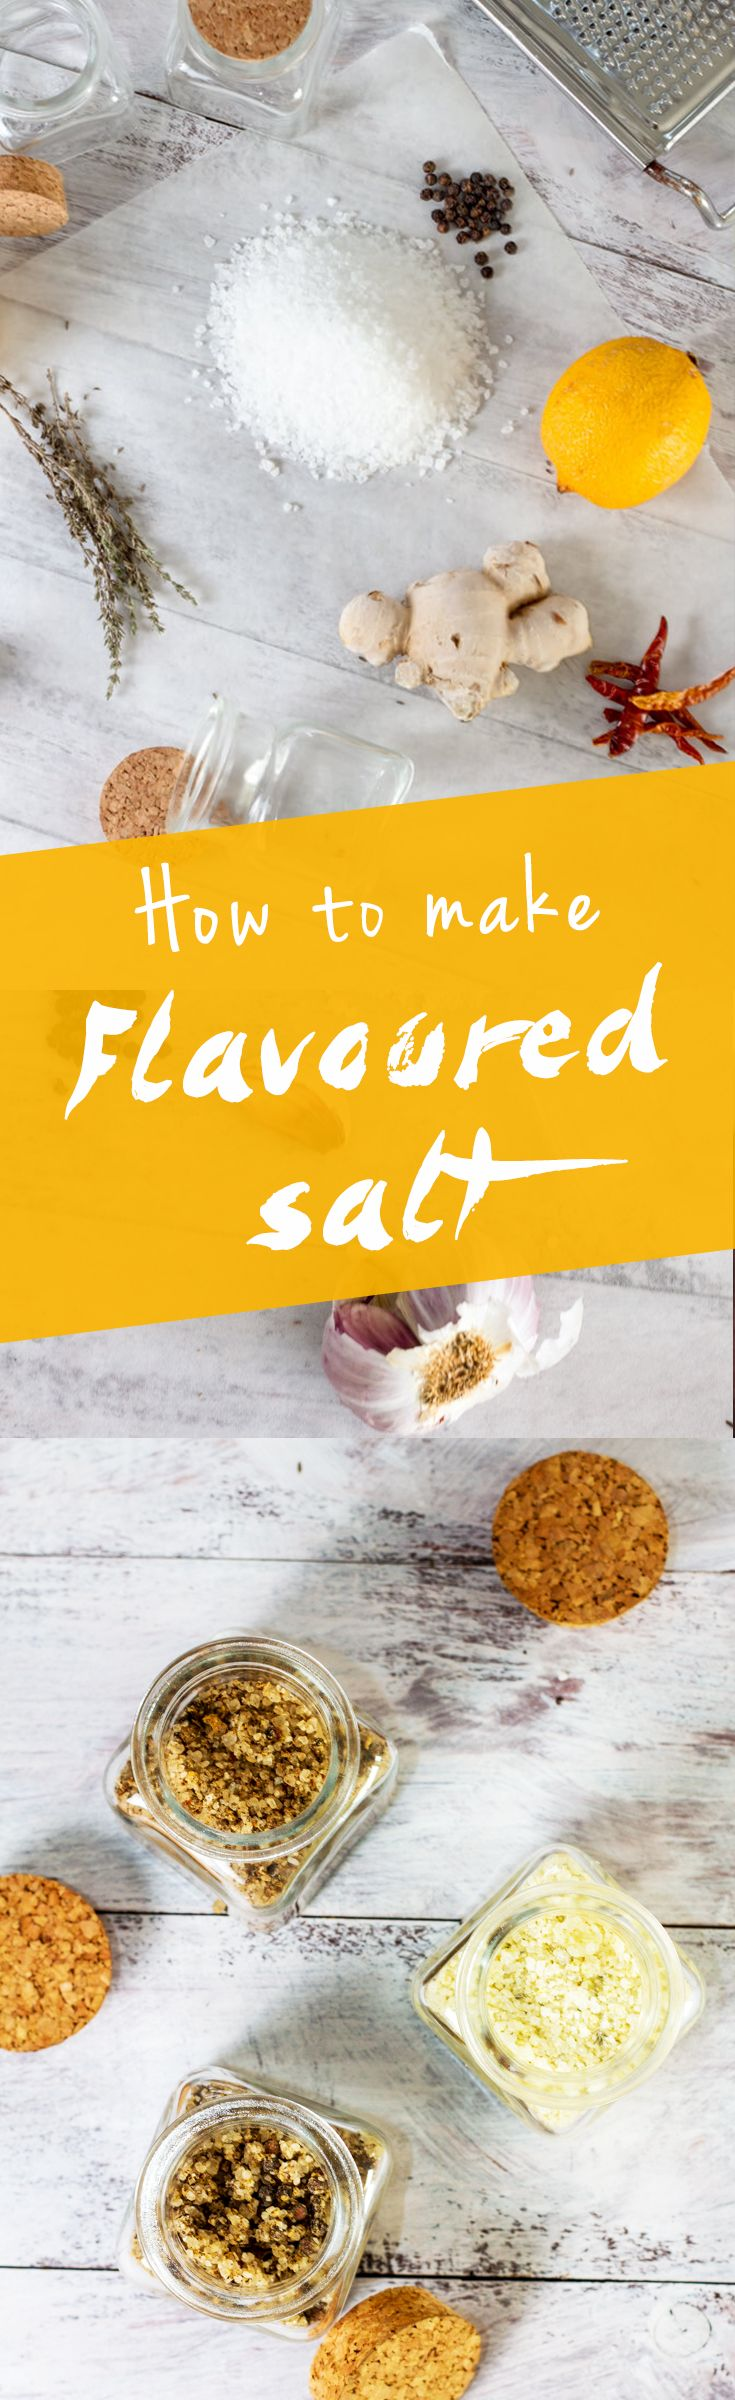 Learn how to make flavored salts. www.haveanotherbite.com | #flavor #salt #recipe